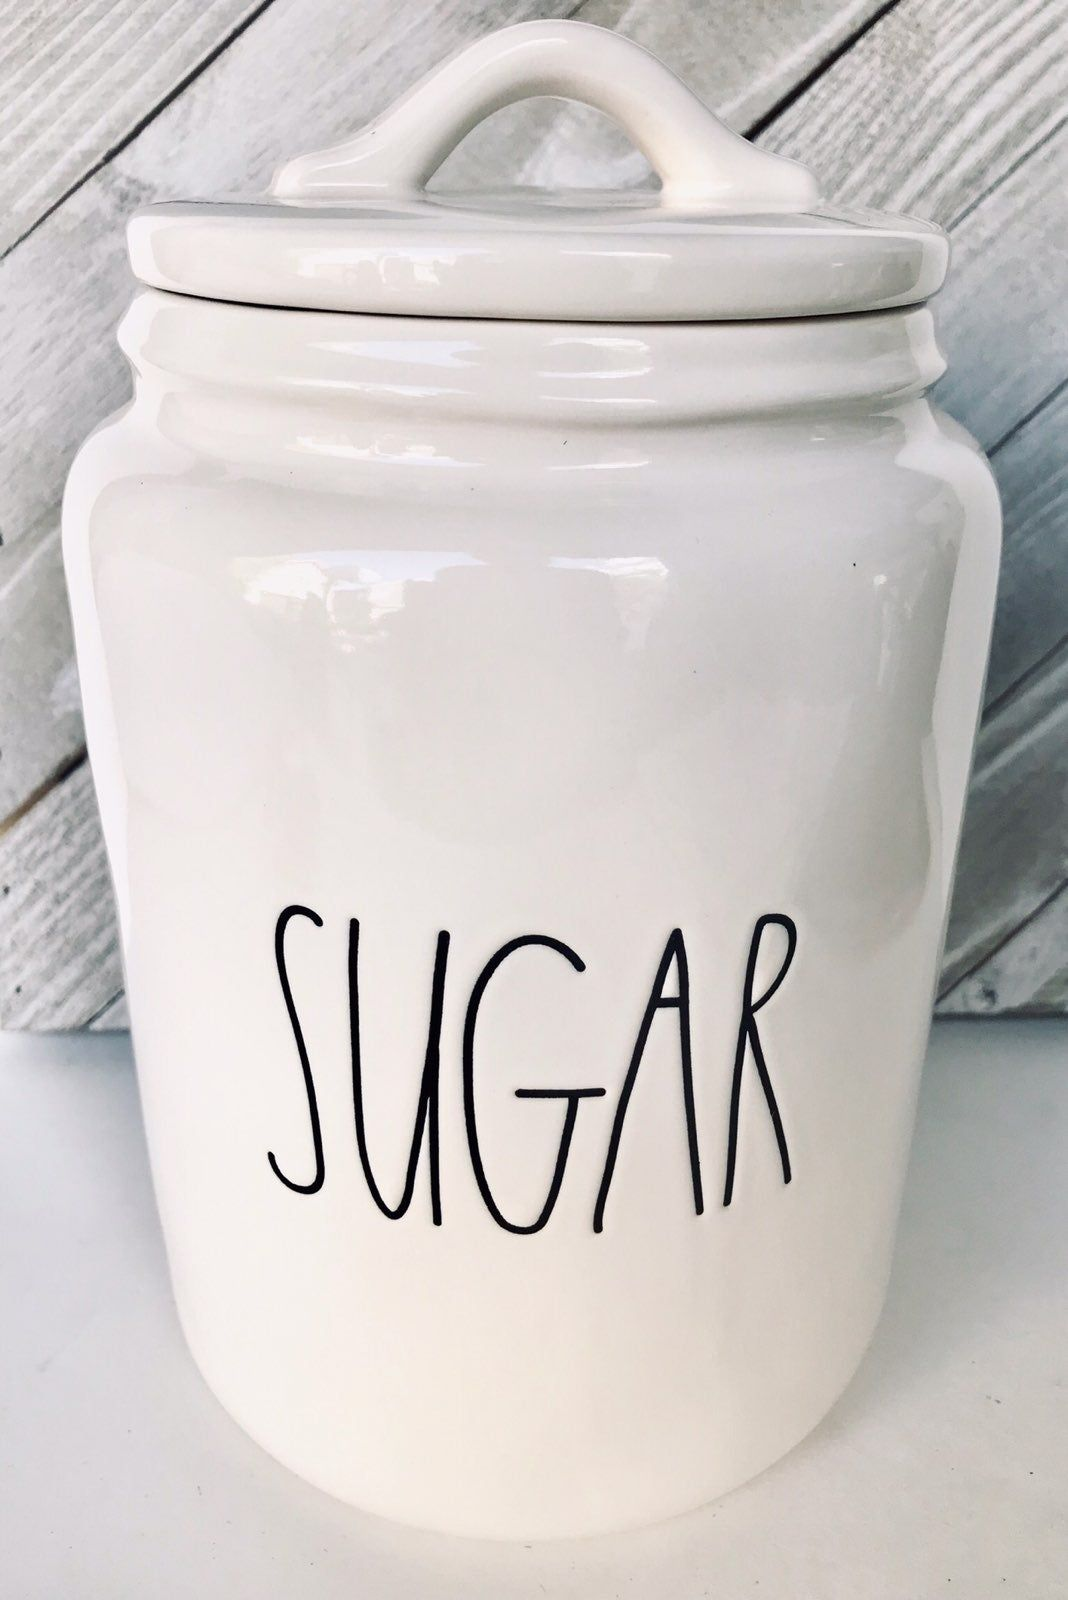 Rae Dunn Sugar Canister By Magenta Large Letter Ll Htf Large Huge Brand New Items Never Used May Get Hot In Mi Rae Dunn Collection Rae Dunn Sugar Canister